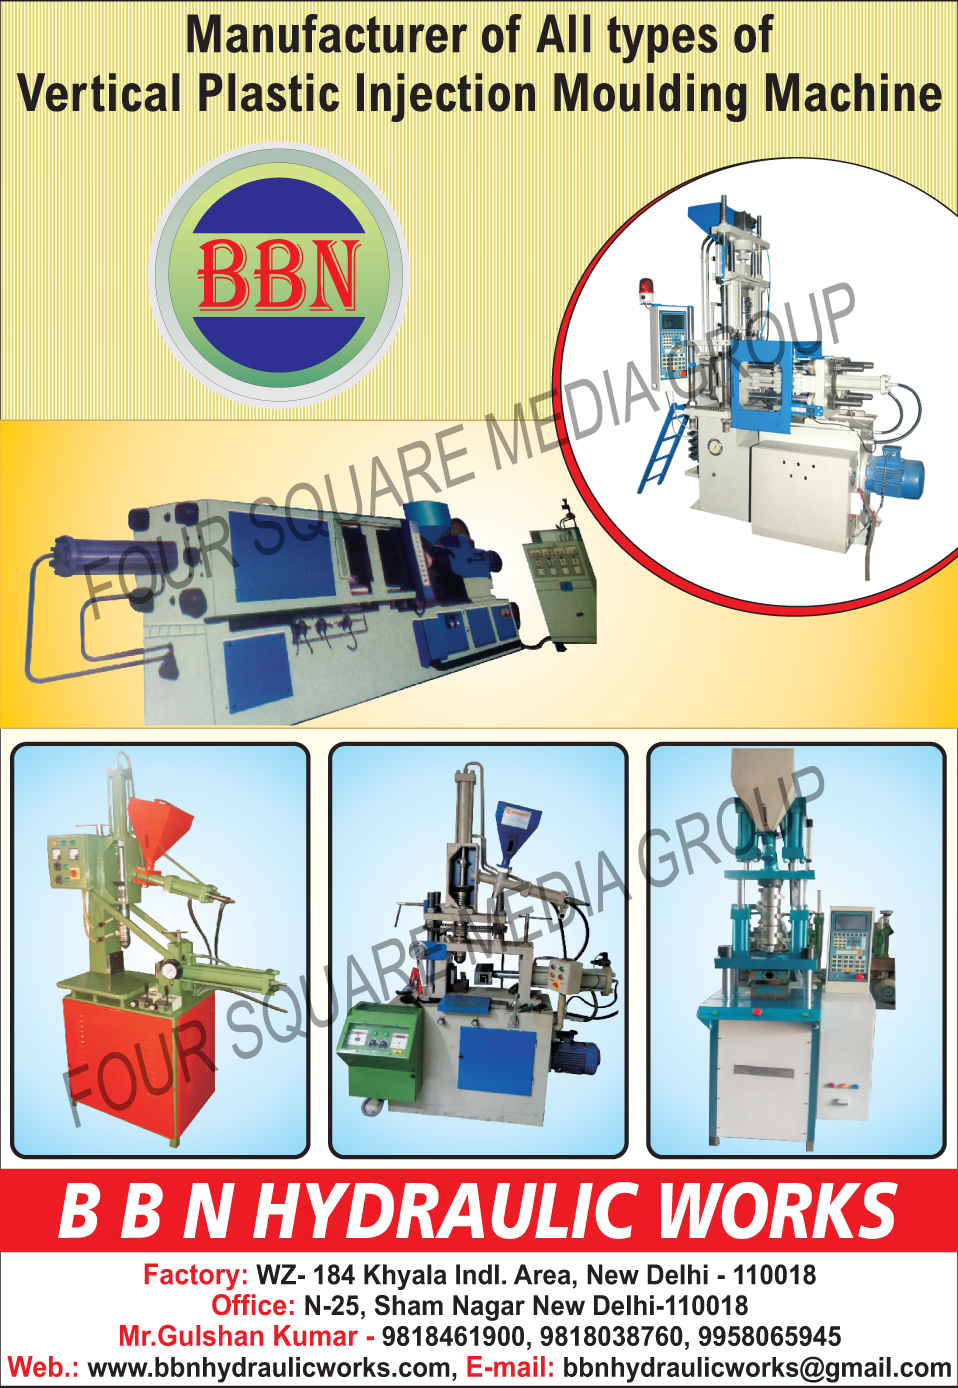 Vertical Plastic Injection Moulding Machines, Vertical Plastic Injection Molding Machines, Plastic Injection Moulding Machines, Plastic Injection Molding Machines